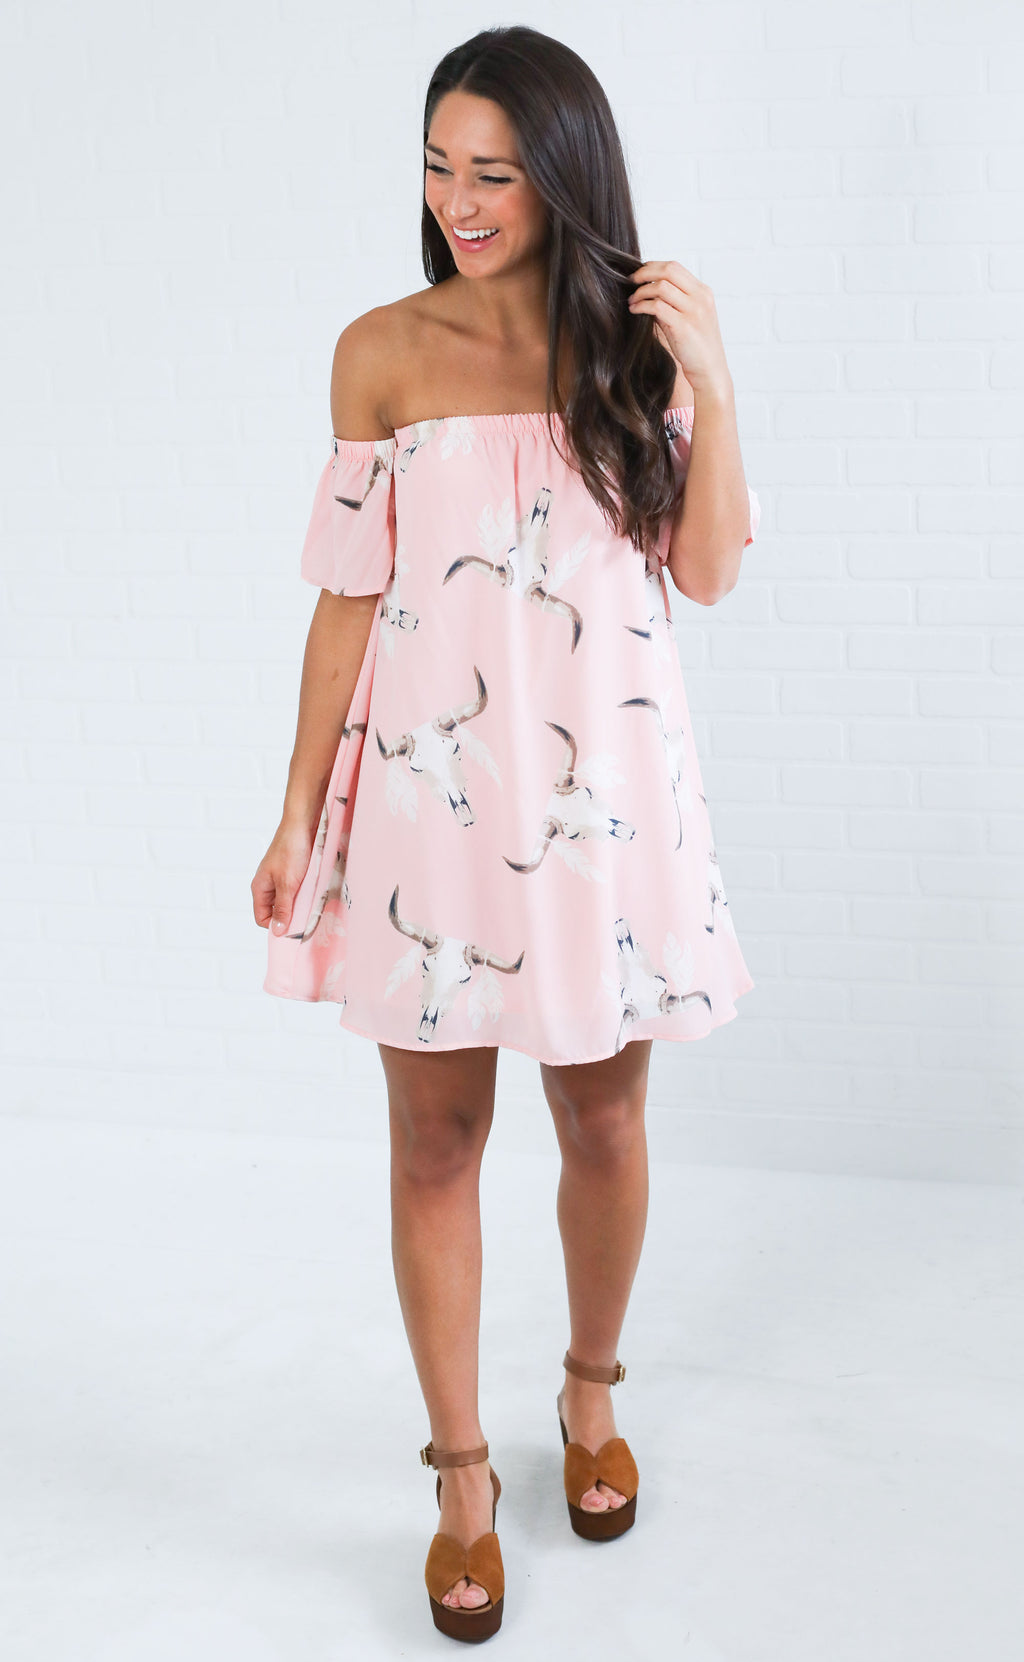 rancho mirage off the shoulder dress